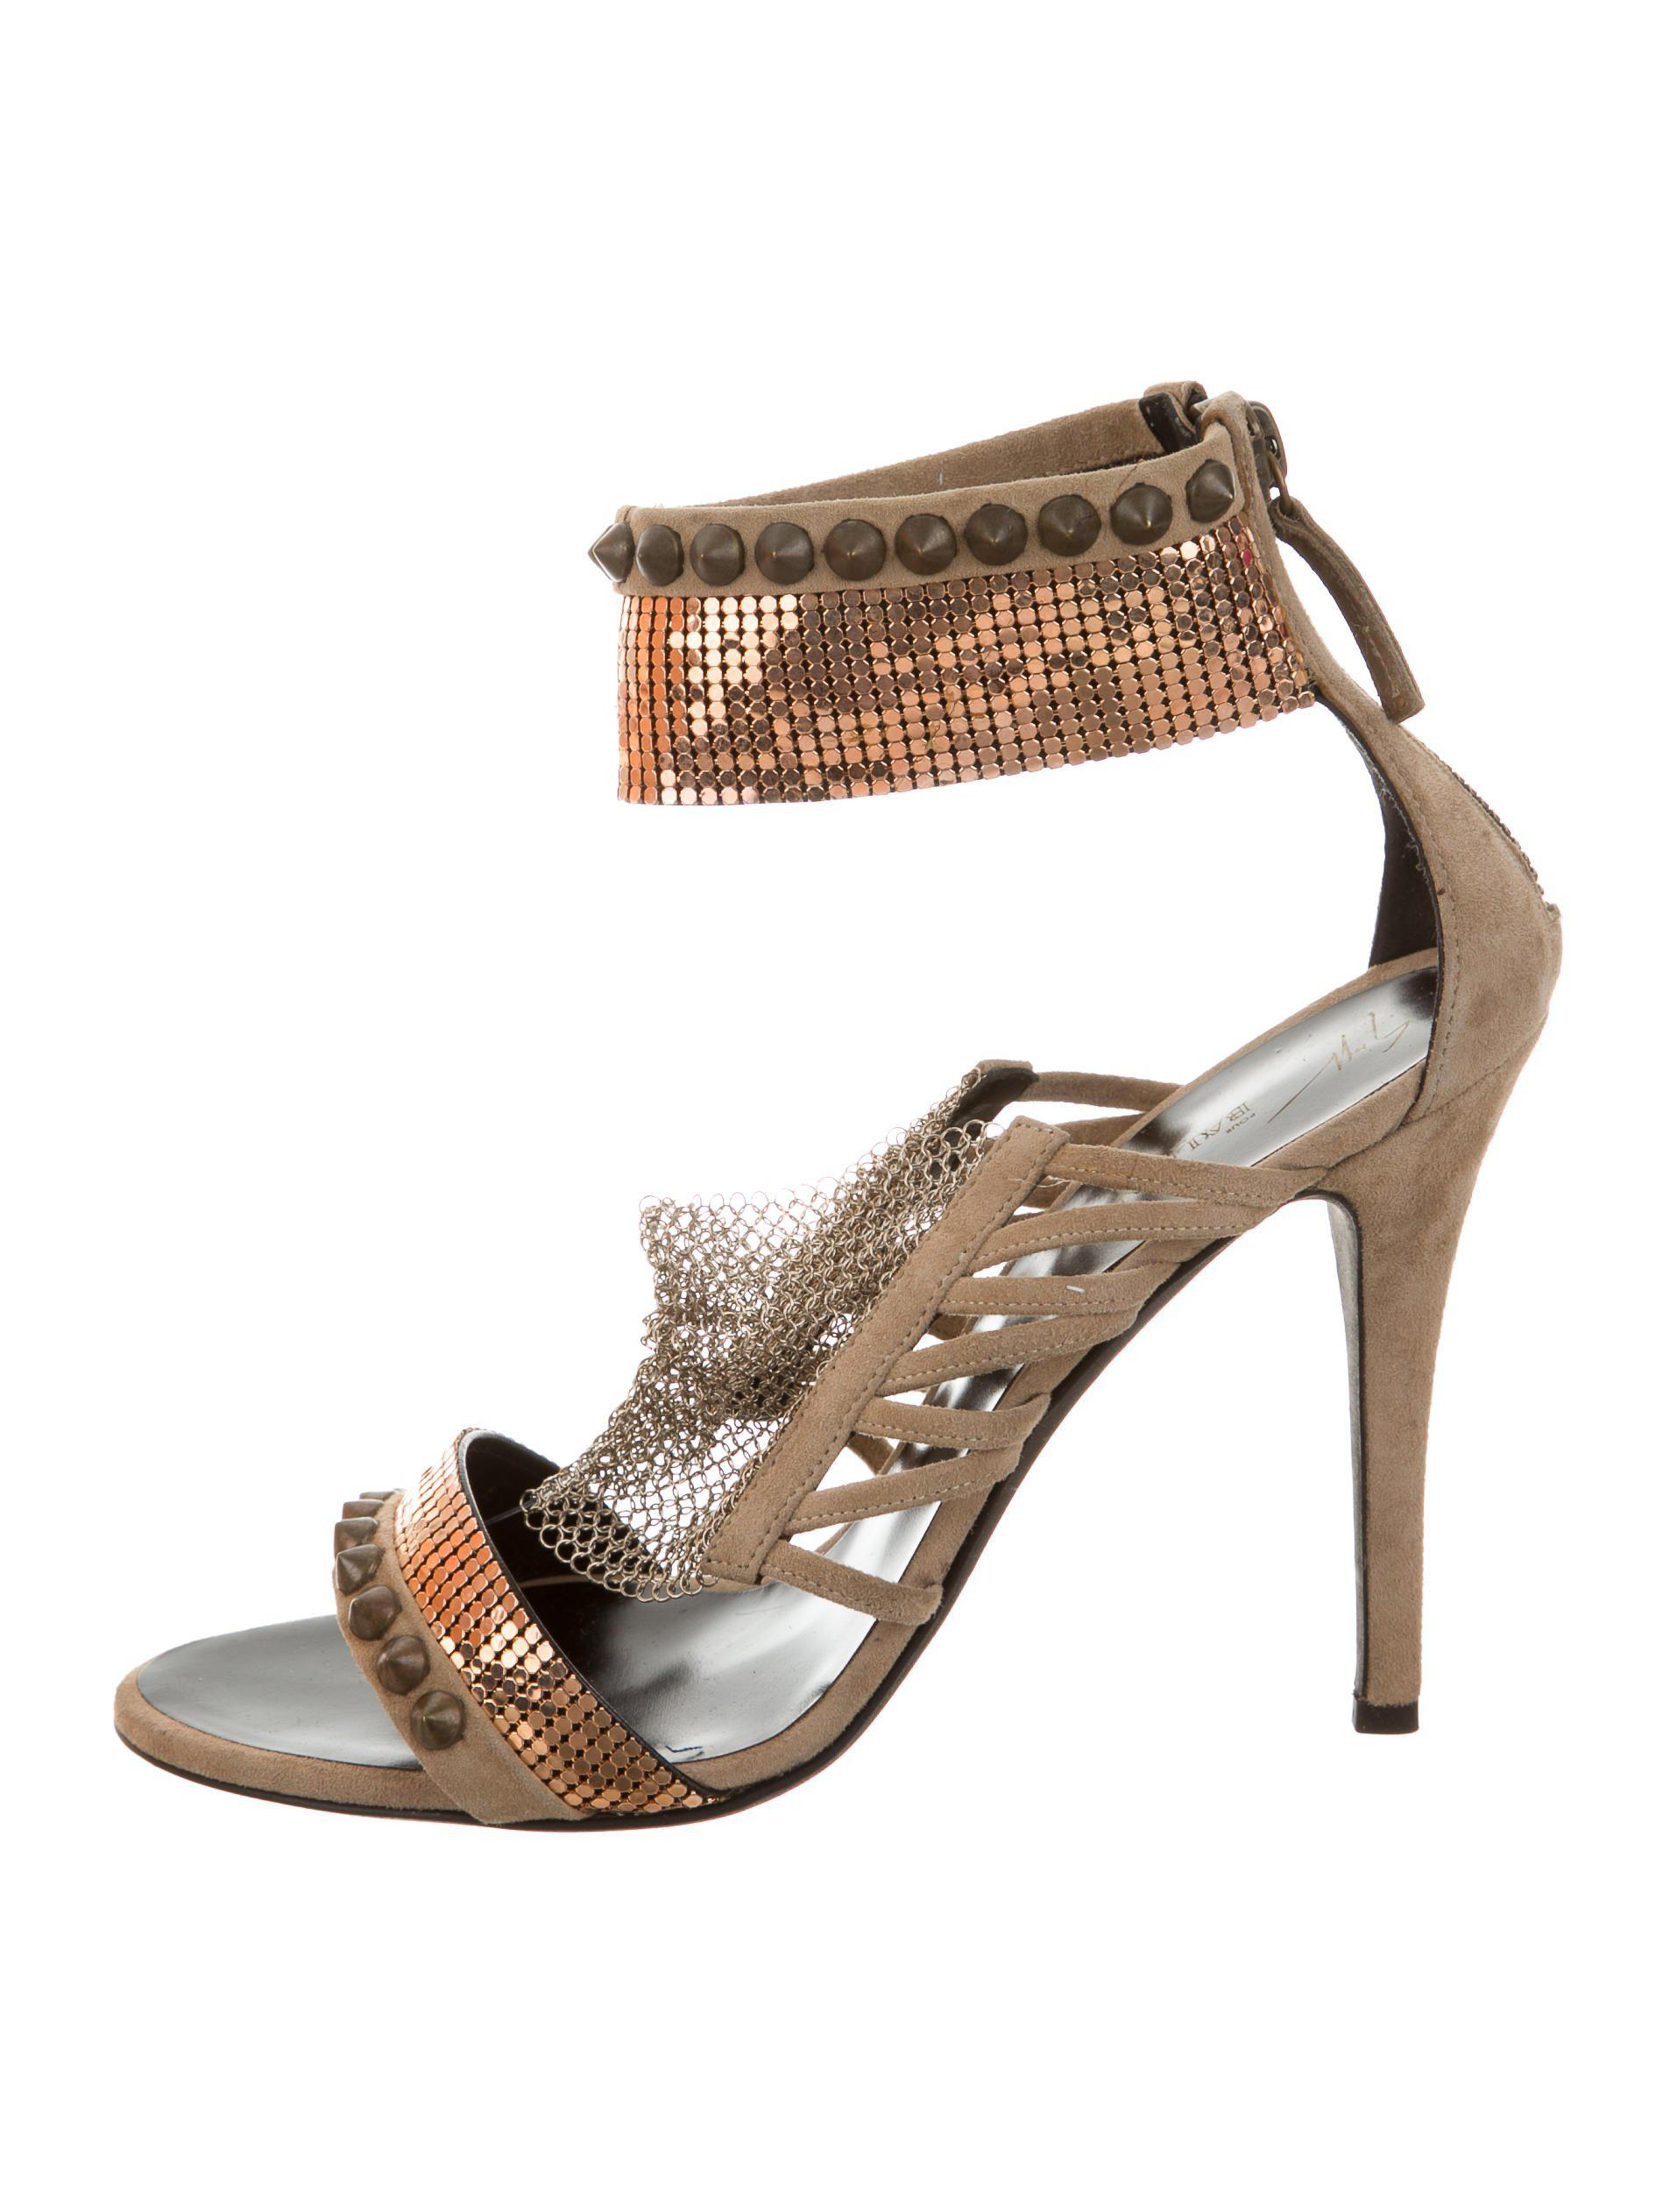 discount pre order footlocker pictures sale online Giuseppe Zanotti Studded Multistrap Sandals w/ Tags shop for cheap price outlet nicekicks cheap sale extremely N7xJV9MY